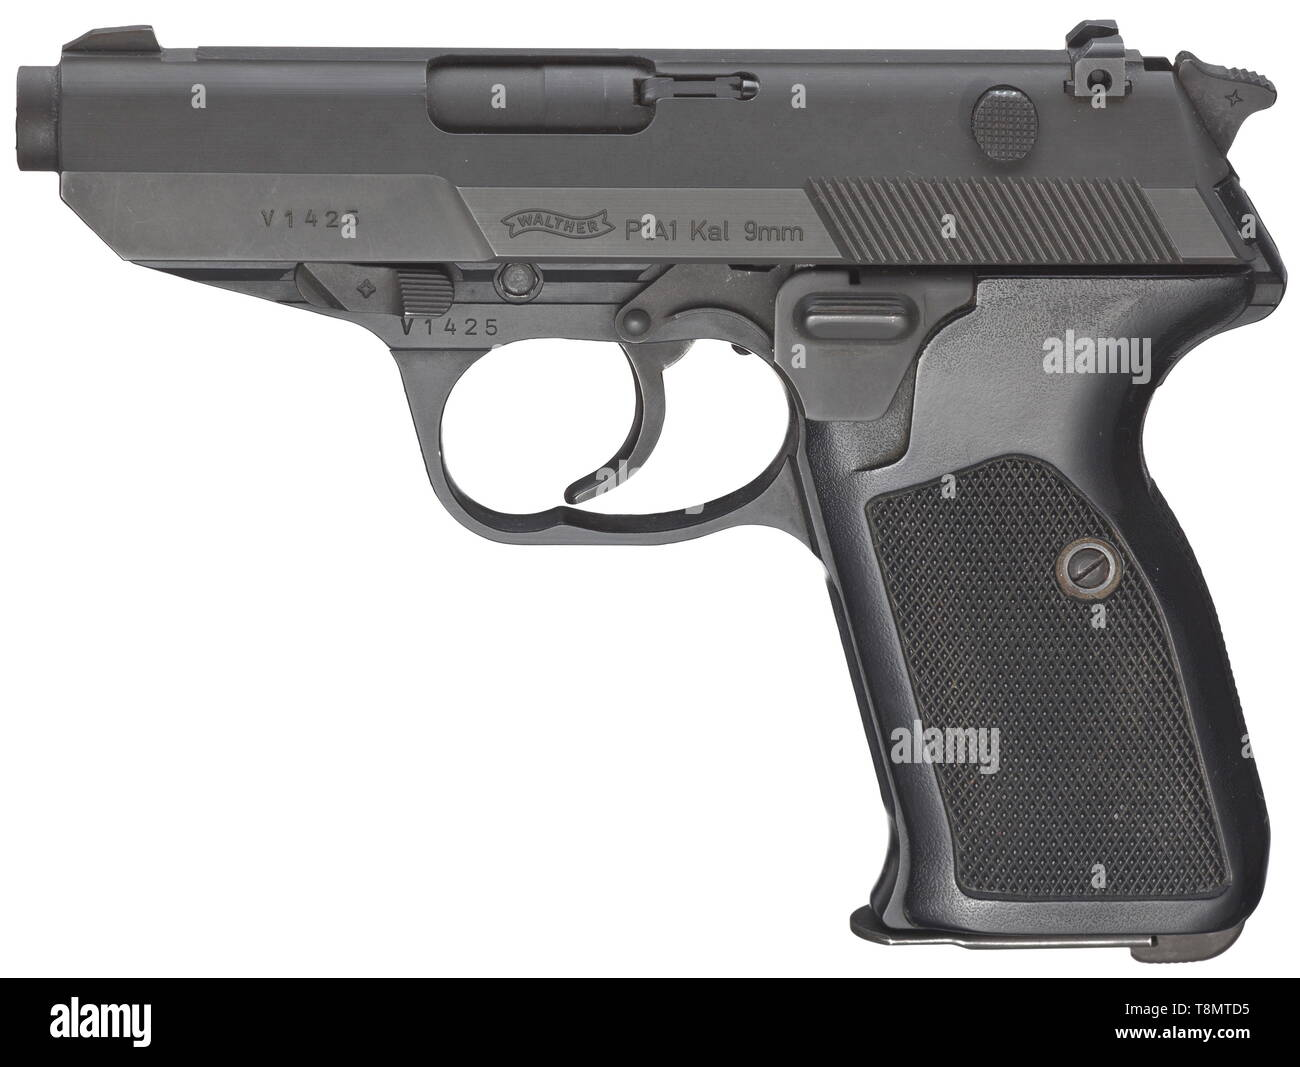 A Walther P1A1, Bundeswehr prototype Cal. 9 mm Parabellum, no. V1425. Matching numbers. Bright bore, length 90 mm. German civilian proof mark 1987. One-piece barrel. Barrel with latch and secured by way of interior hexagon screw. Exterior breech in shape similar to P 5. V rear sight and post sight. Both with white points as brightness markings. Automatic firing pin safety. Additional mechanical safety in form of a push piece 20th century, Additional-Rights-Clearance-Info-Not-Available - Stock Image